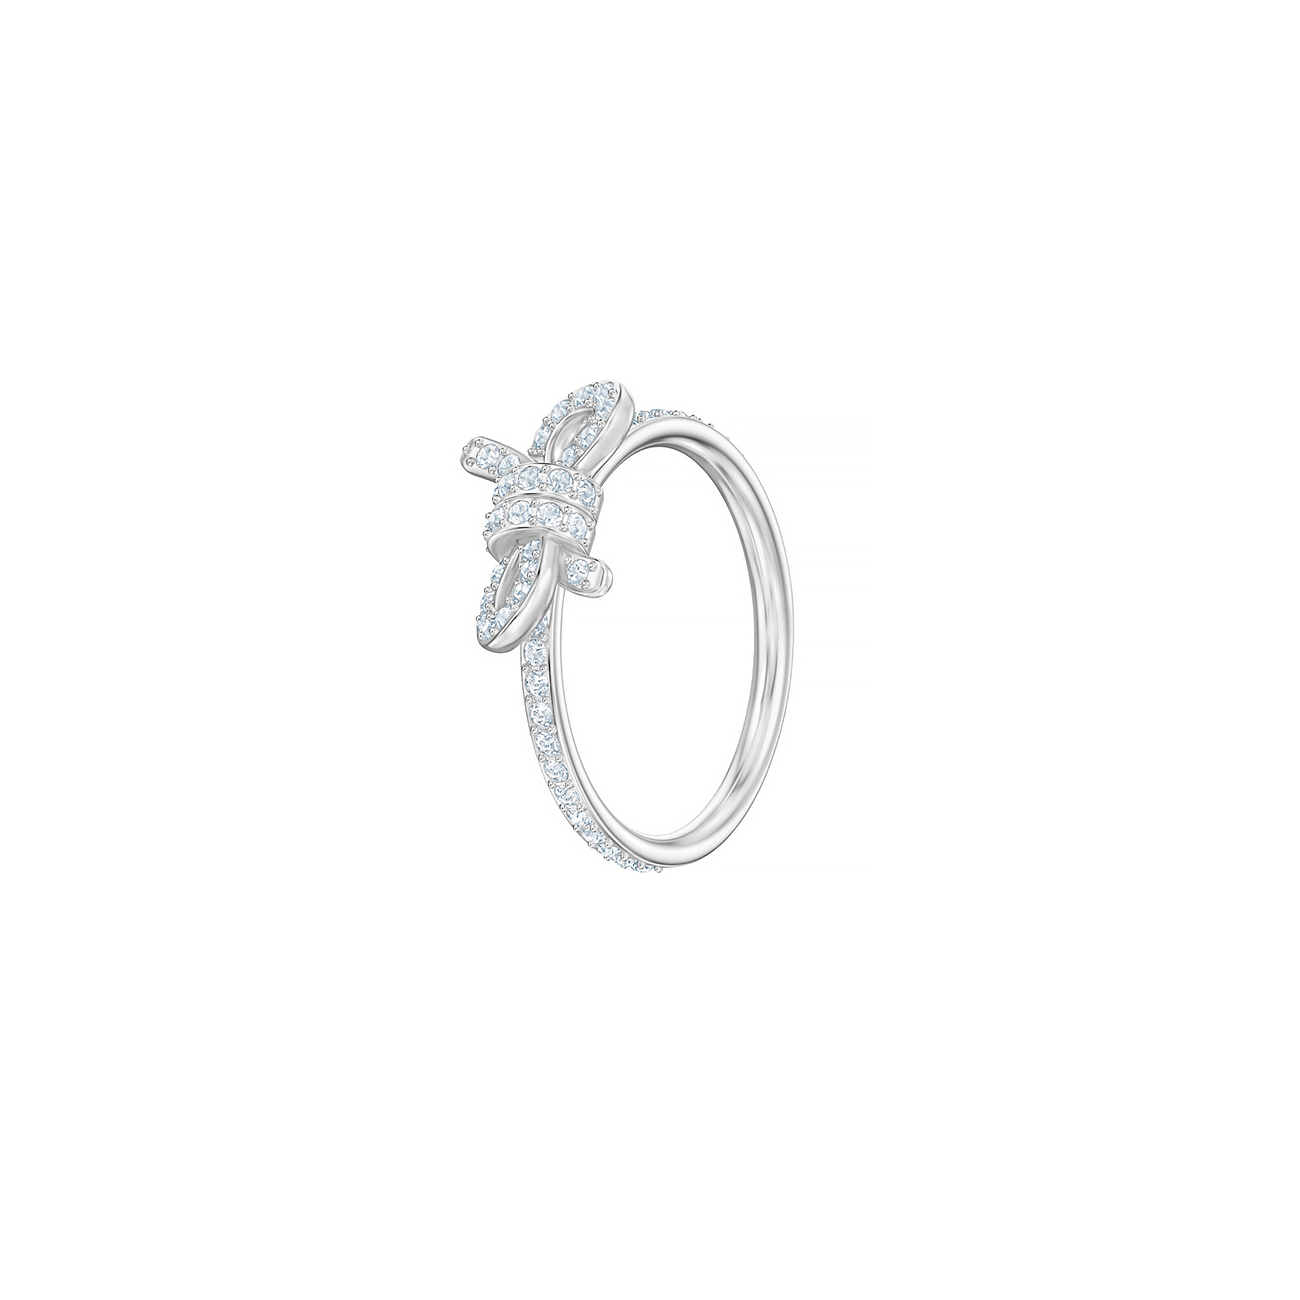 LIFELONG SMALL BOW RING 5457269